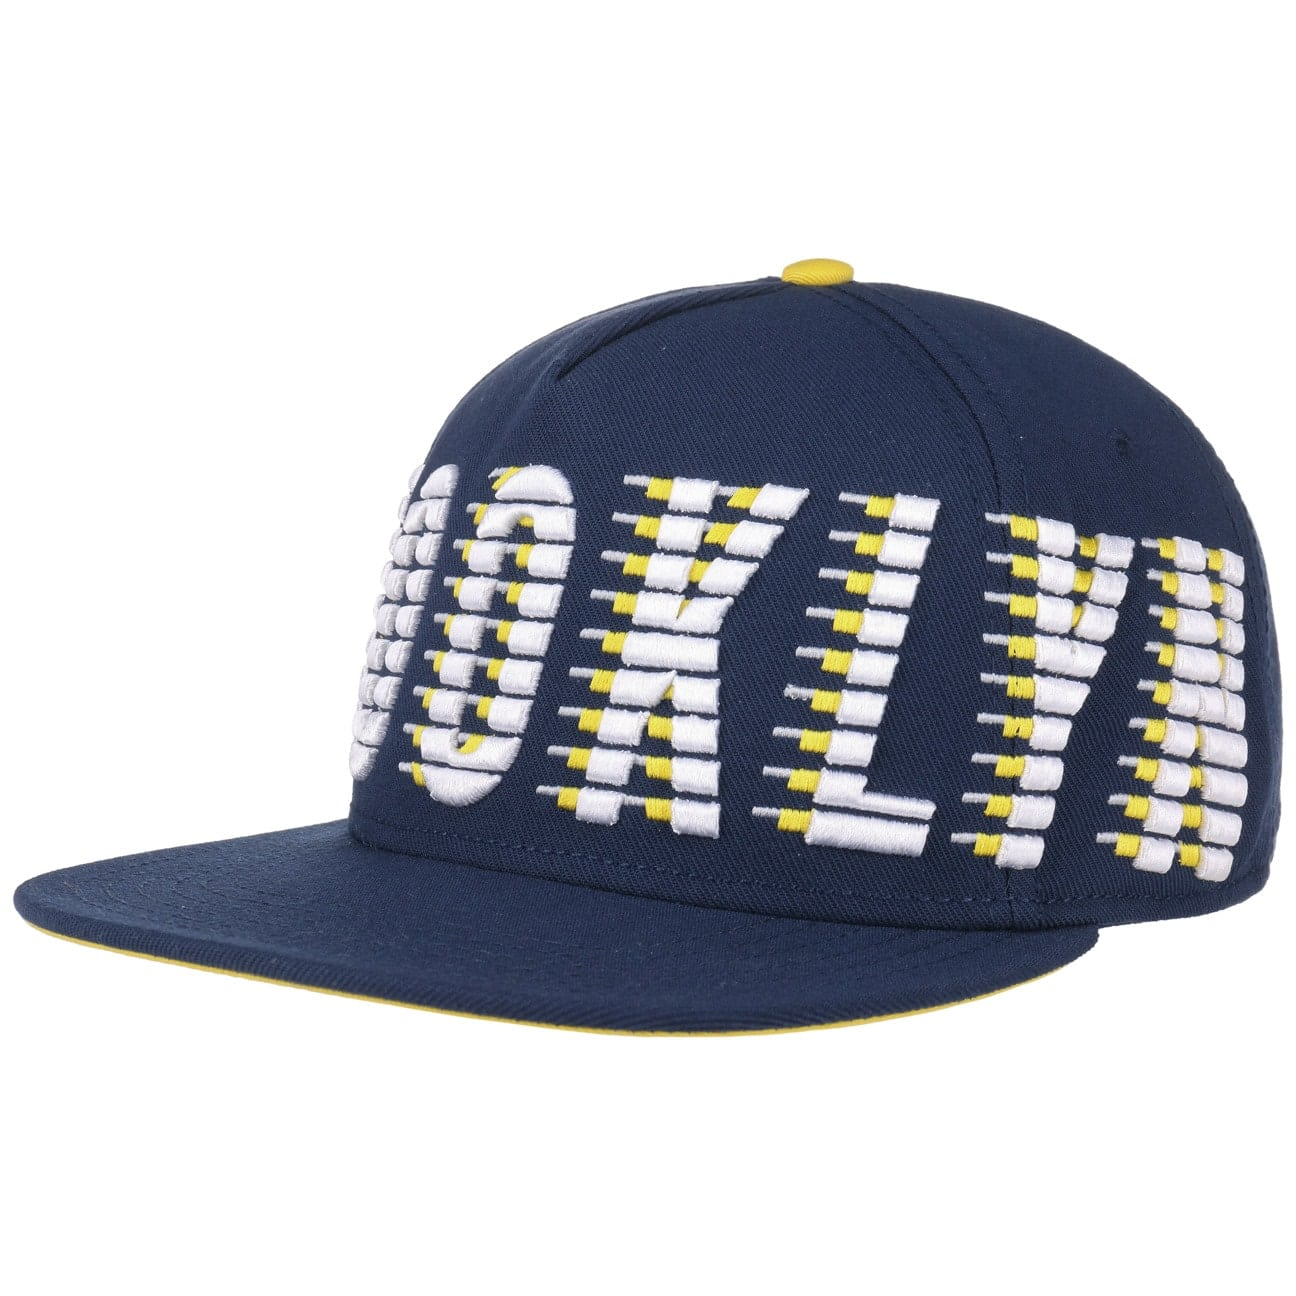 Casquette Brooklyn Athletics by Cayler & Sons  baseball cap